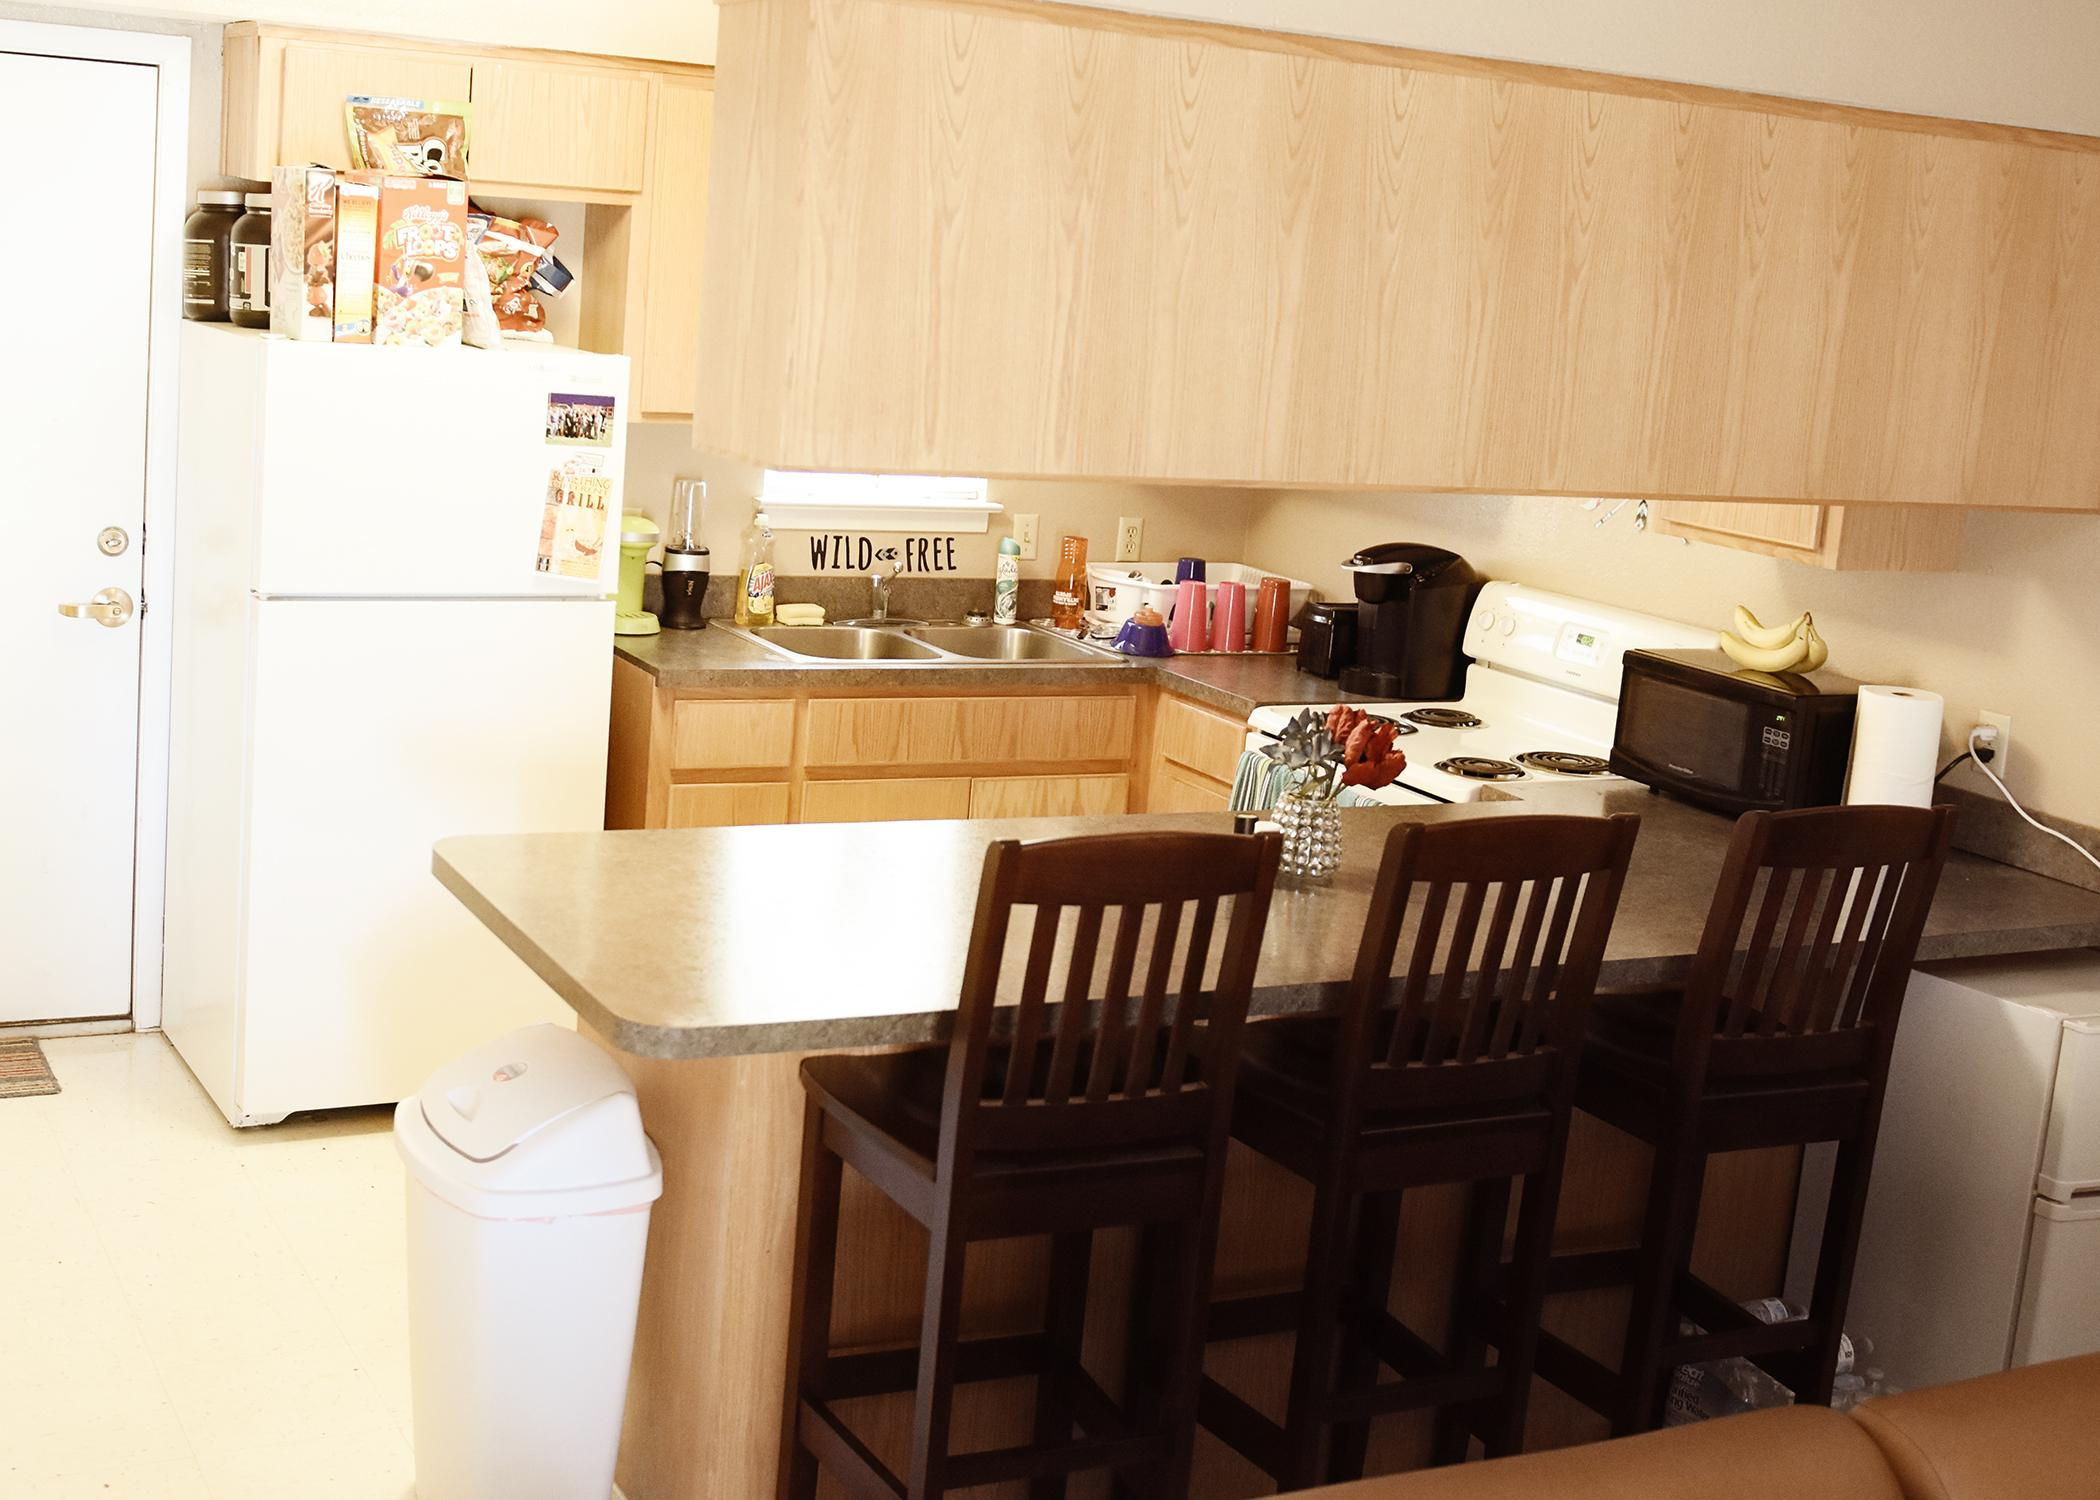 The kitchen area has four bar stools, a stove, and a refrigerator.